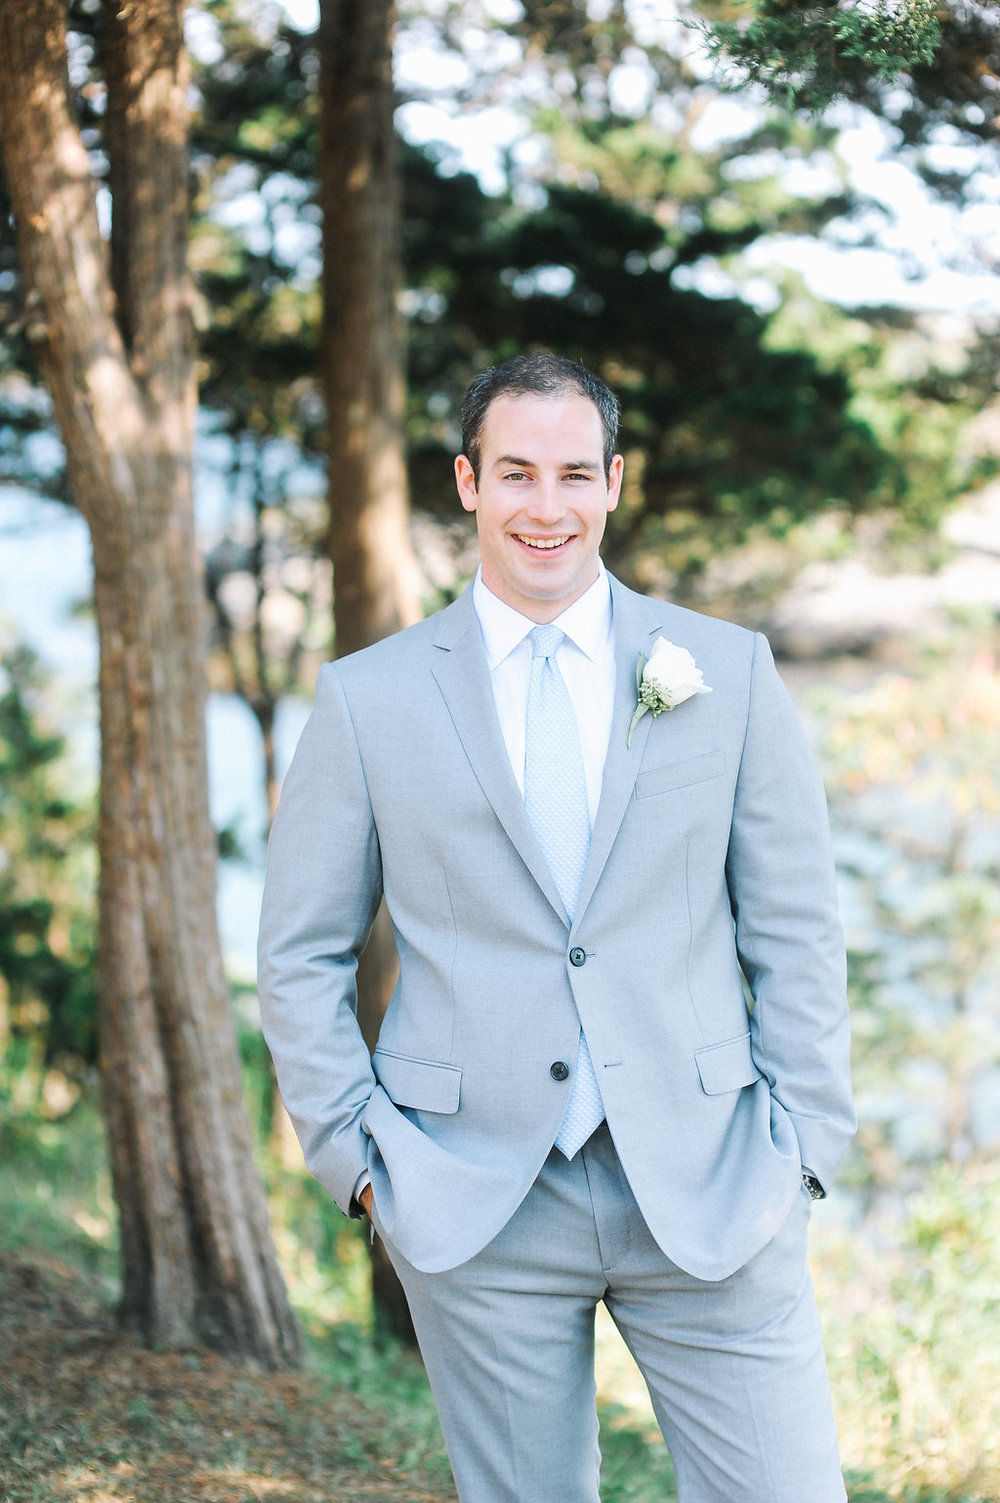 BrideGroomPortraits_Dragonline_Studios_Jamestown_RI_Wedding-62.jpg